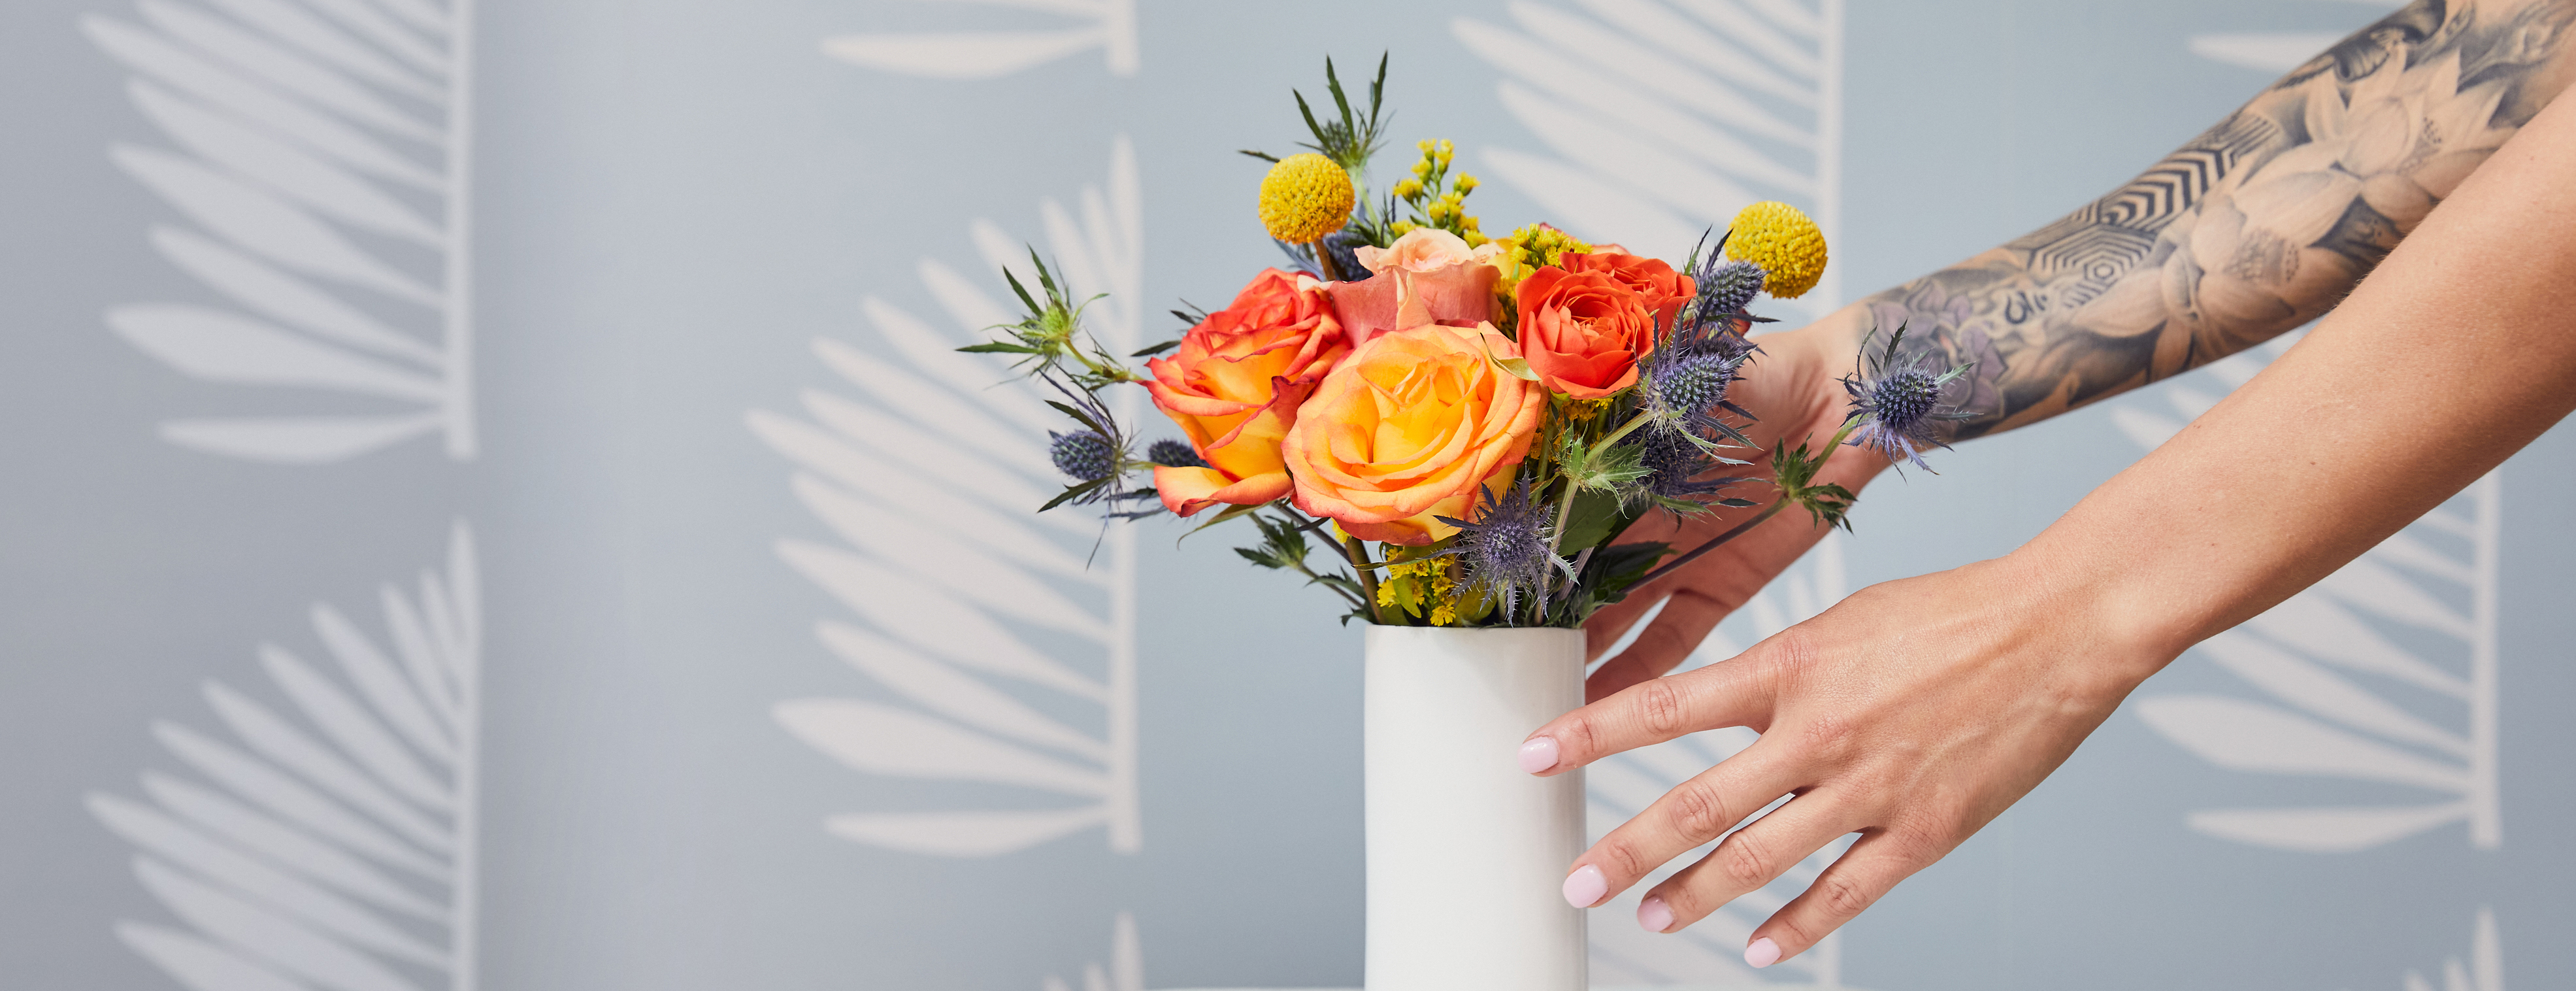 Hands placing a mini flower bouquet in a white vase